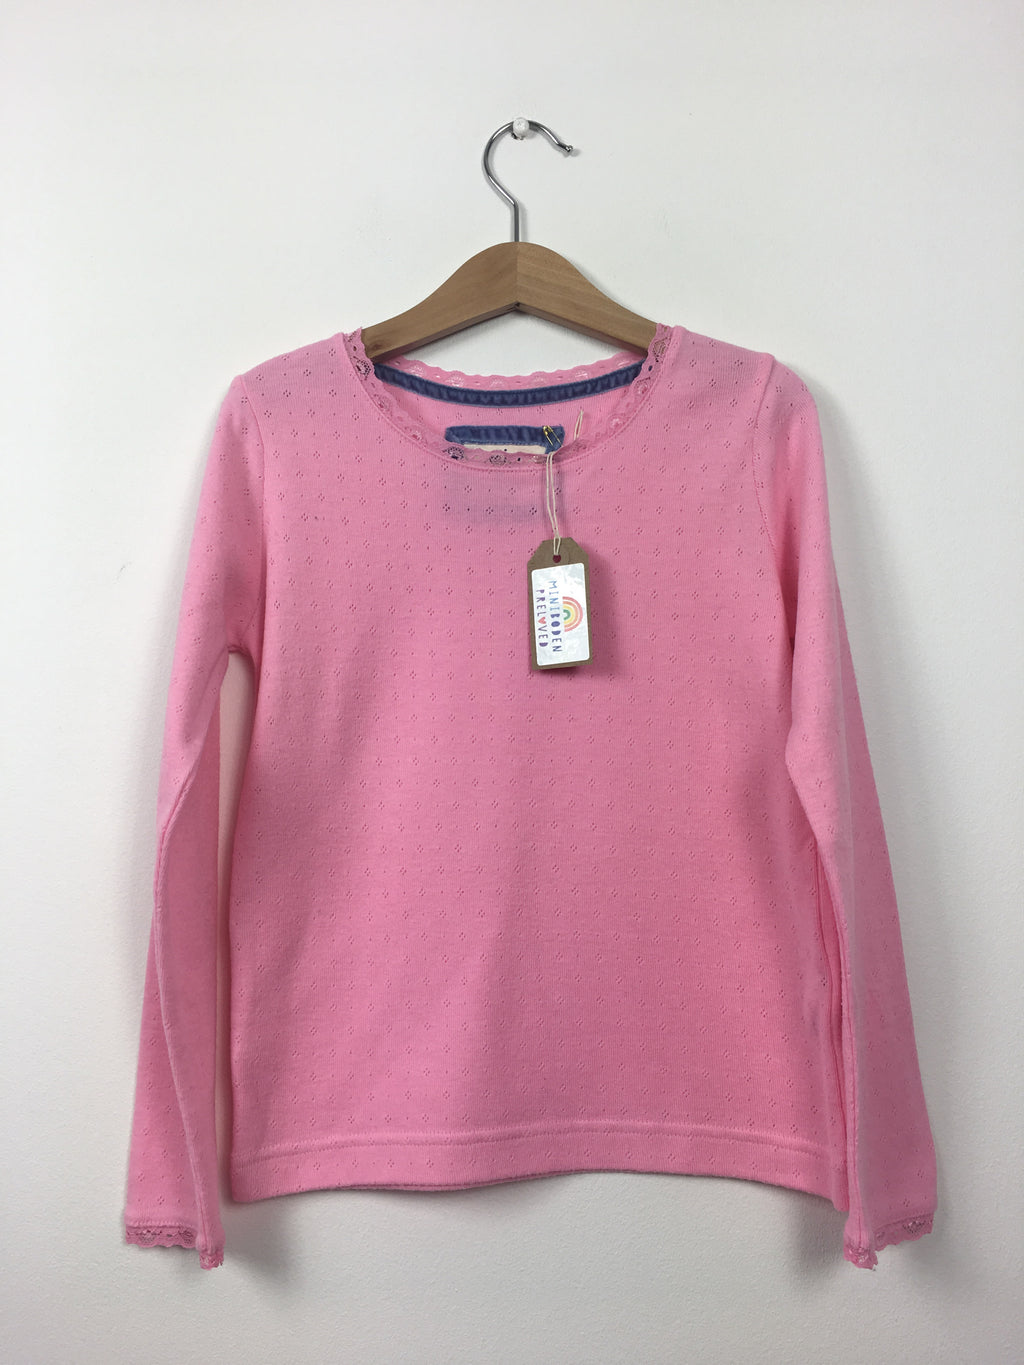 Soft Pink Pointelle Top (7-8 Years)